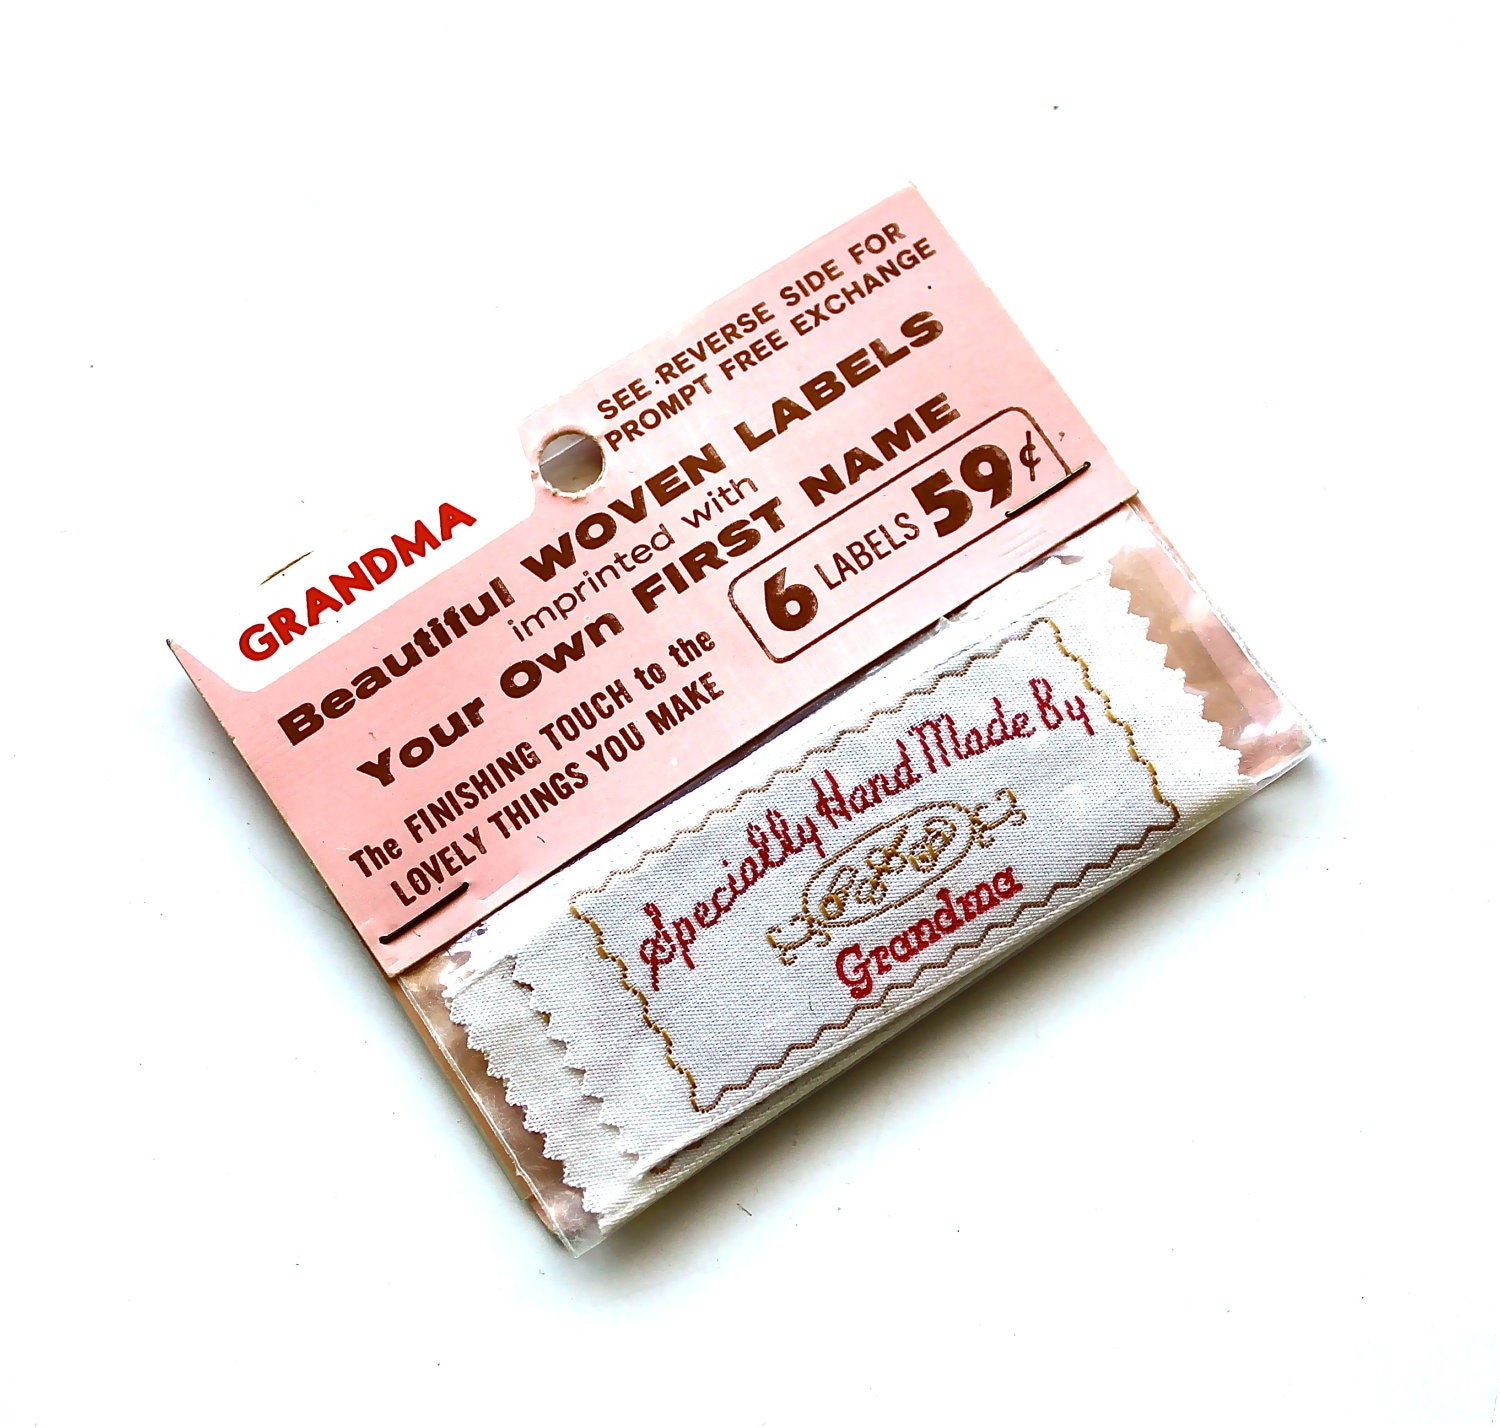 handmade labels for sewing sewn by vintage sewing labels by becaruns on etsy 8532